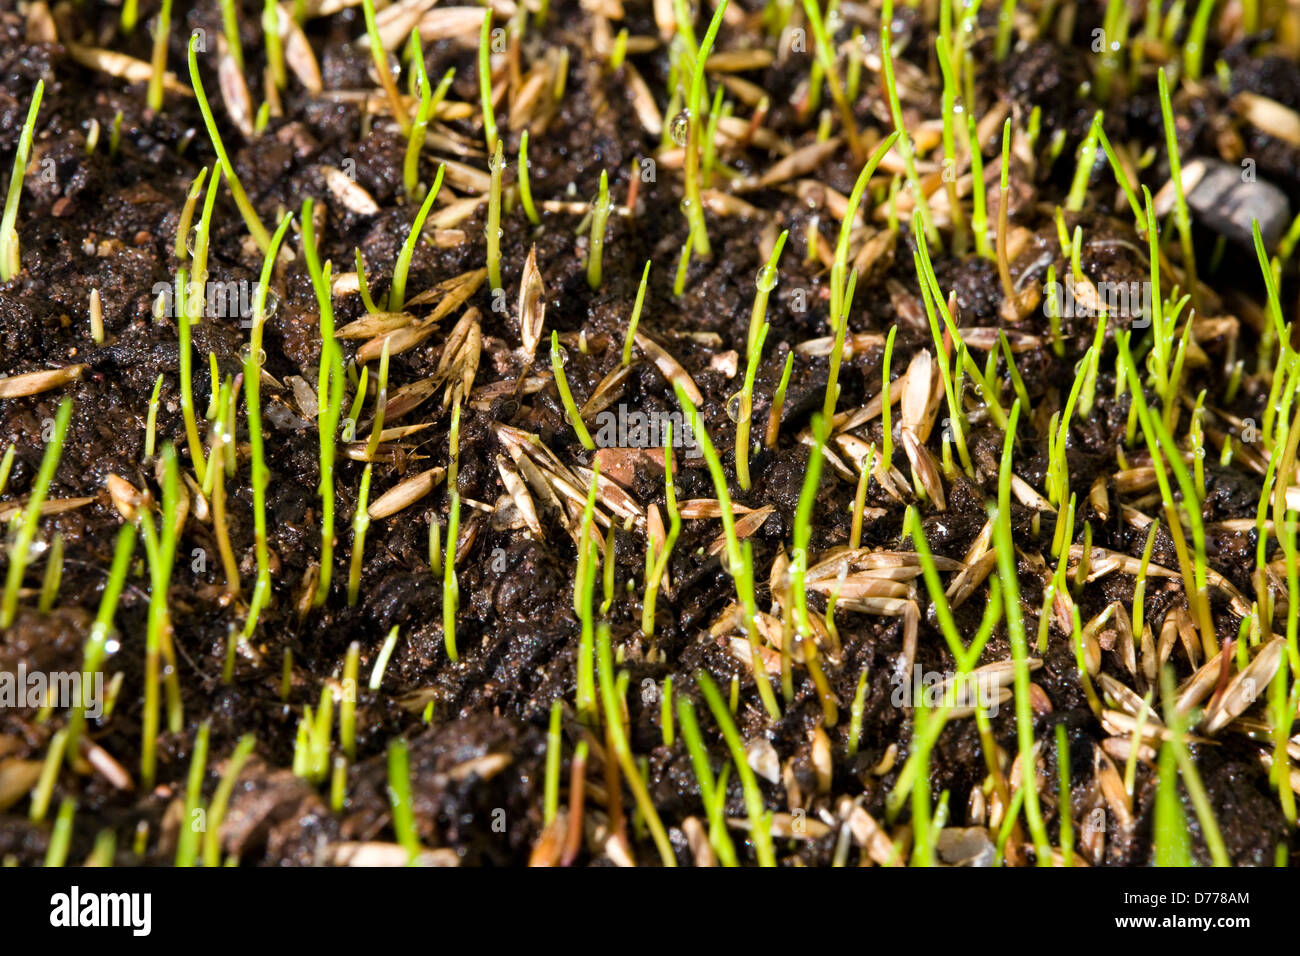 Soil germinating seeds pictures to pin on pinterest for What does soil come from